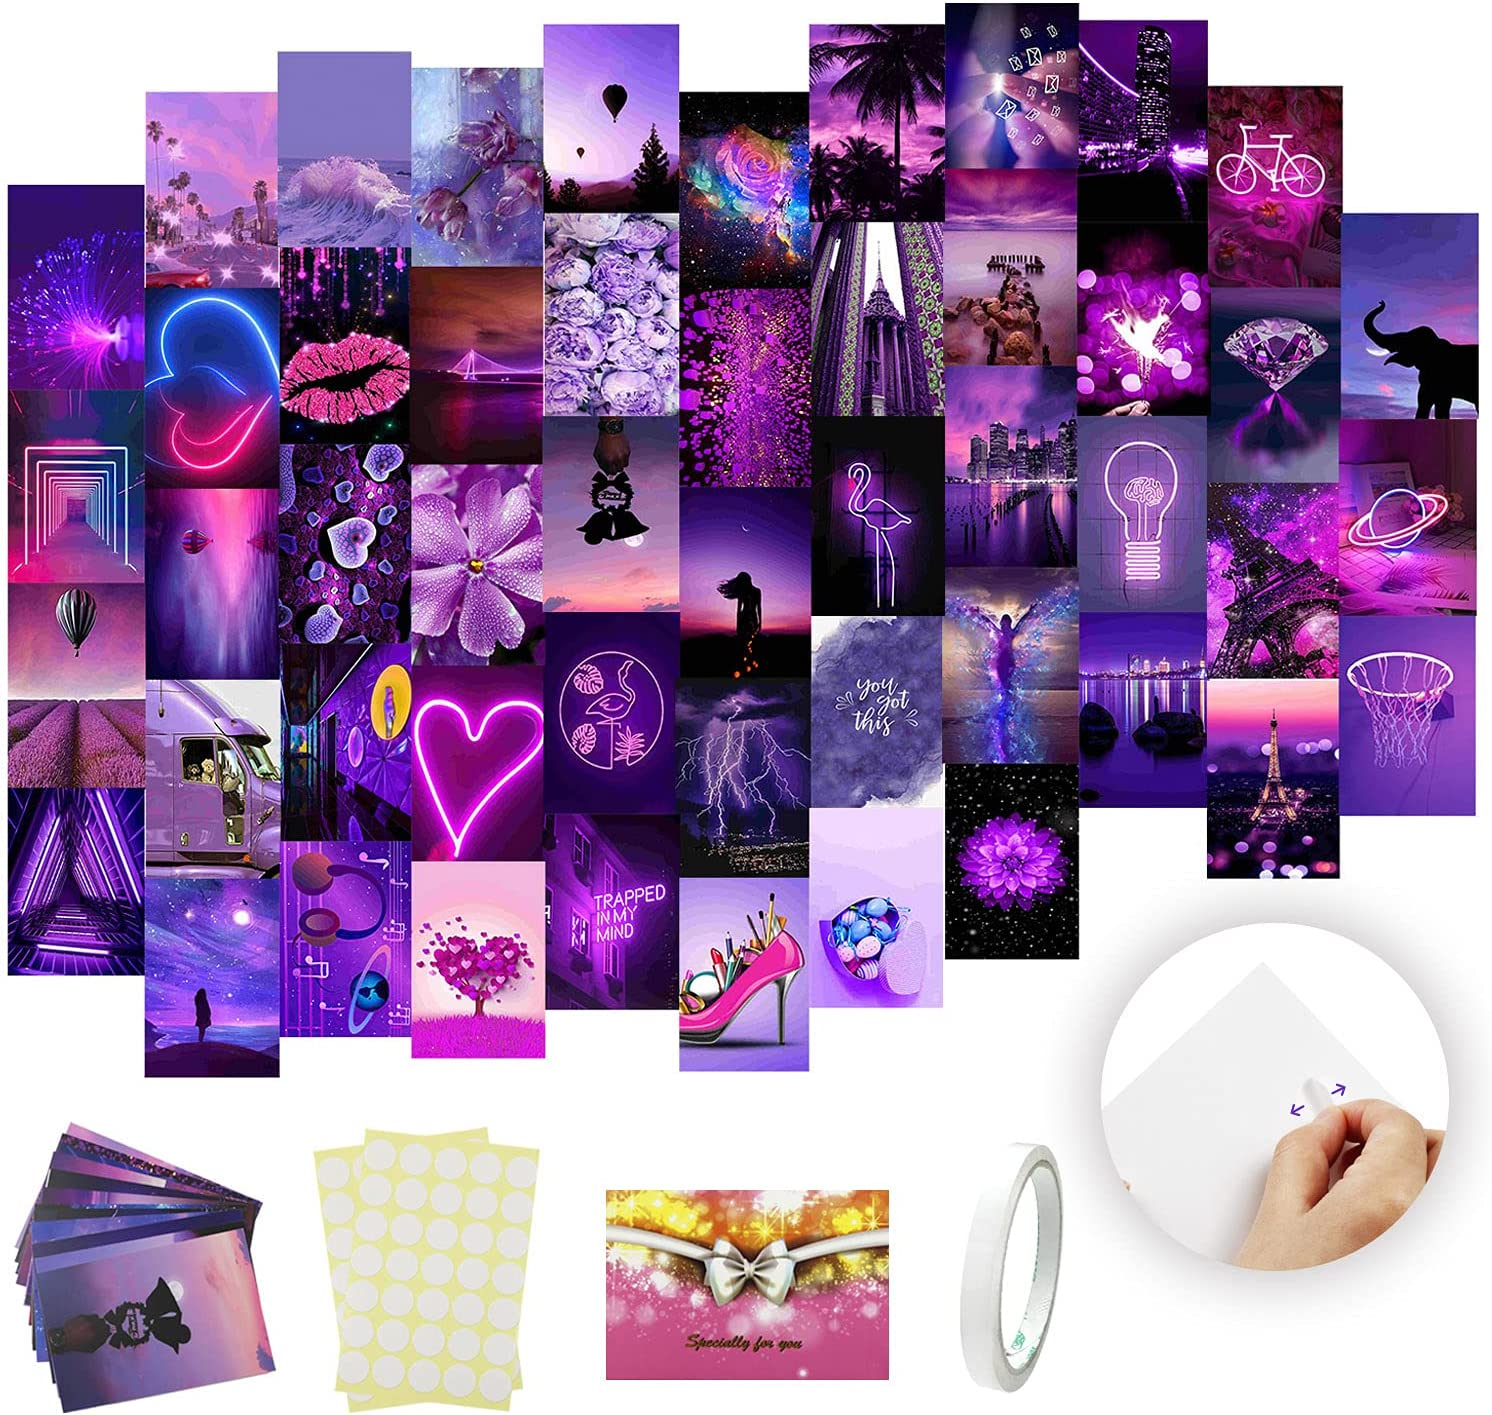 Wall Collage Kit Aesthetic Pictures Purple Photo Collection 50 Set 4x6 inch Aesthetic Posters Collage Kit Wall Images for Teen Girls Bedroom Dorm Wall Art Prints Decor